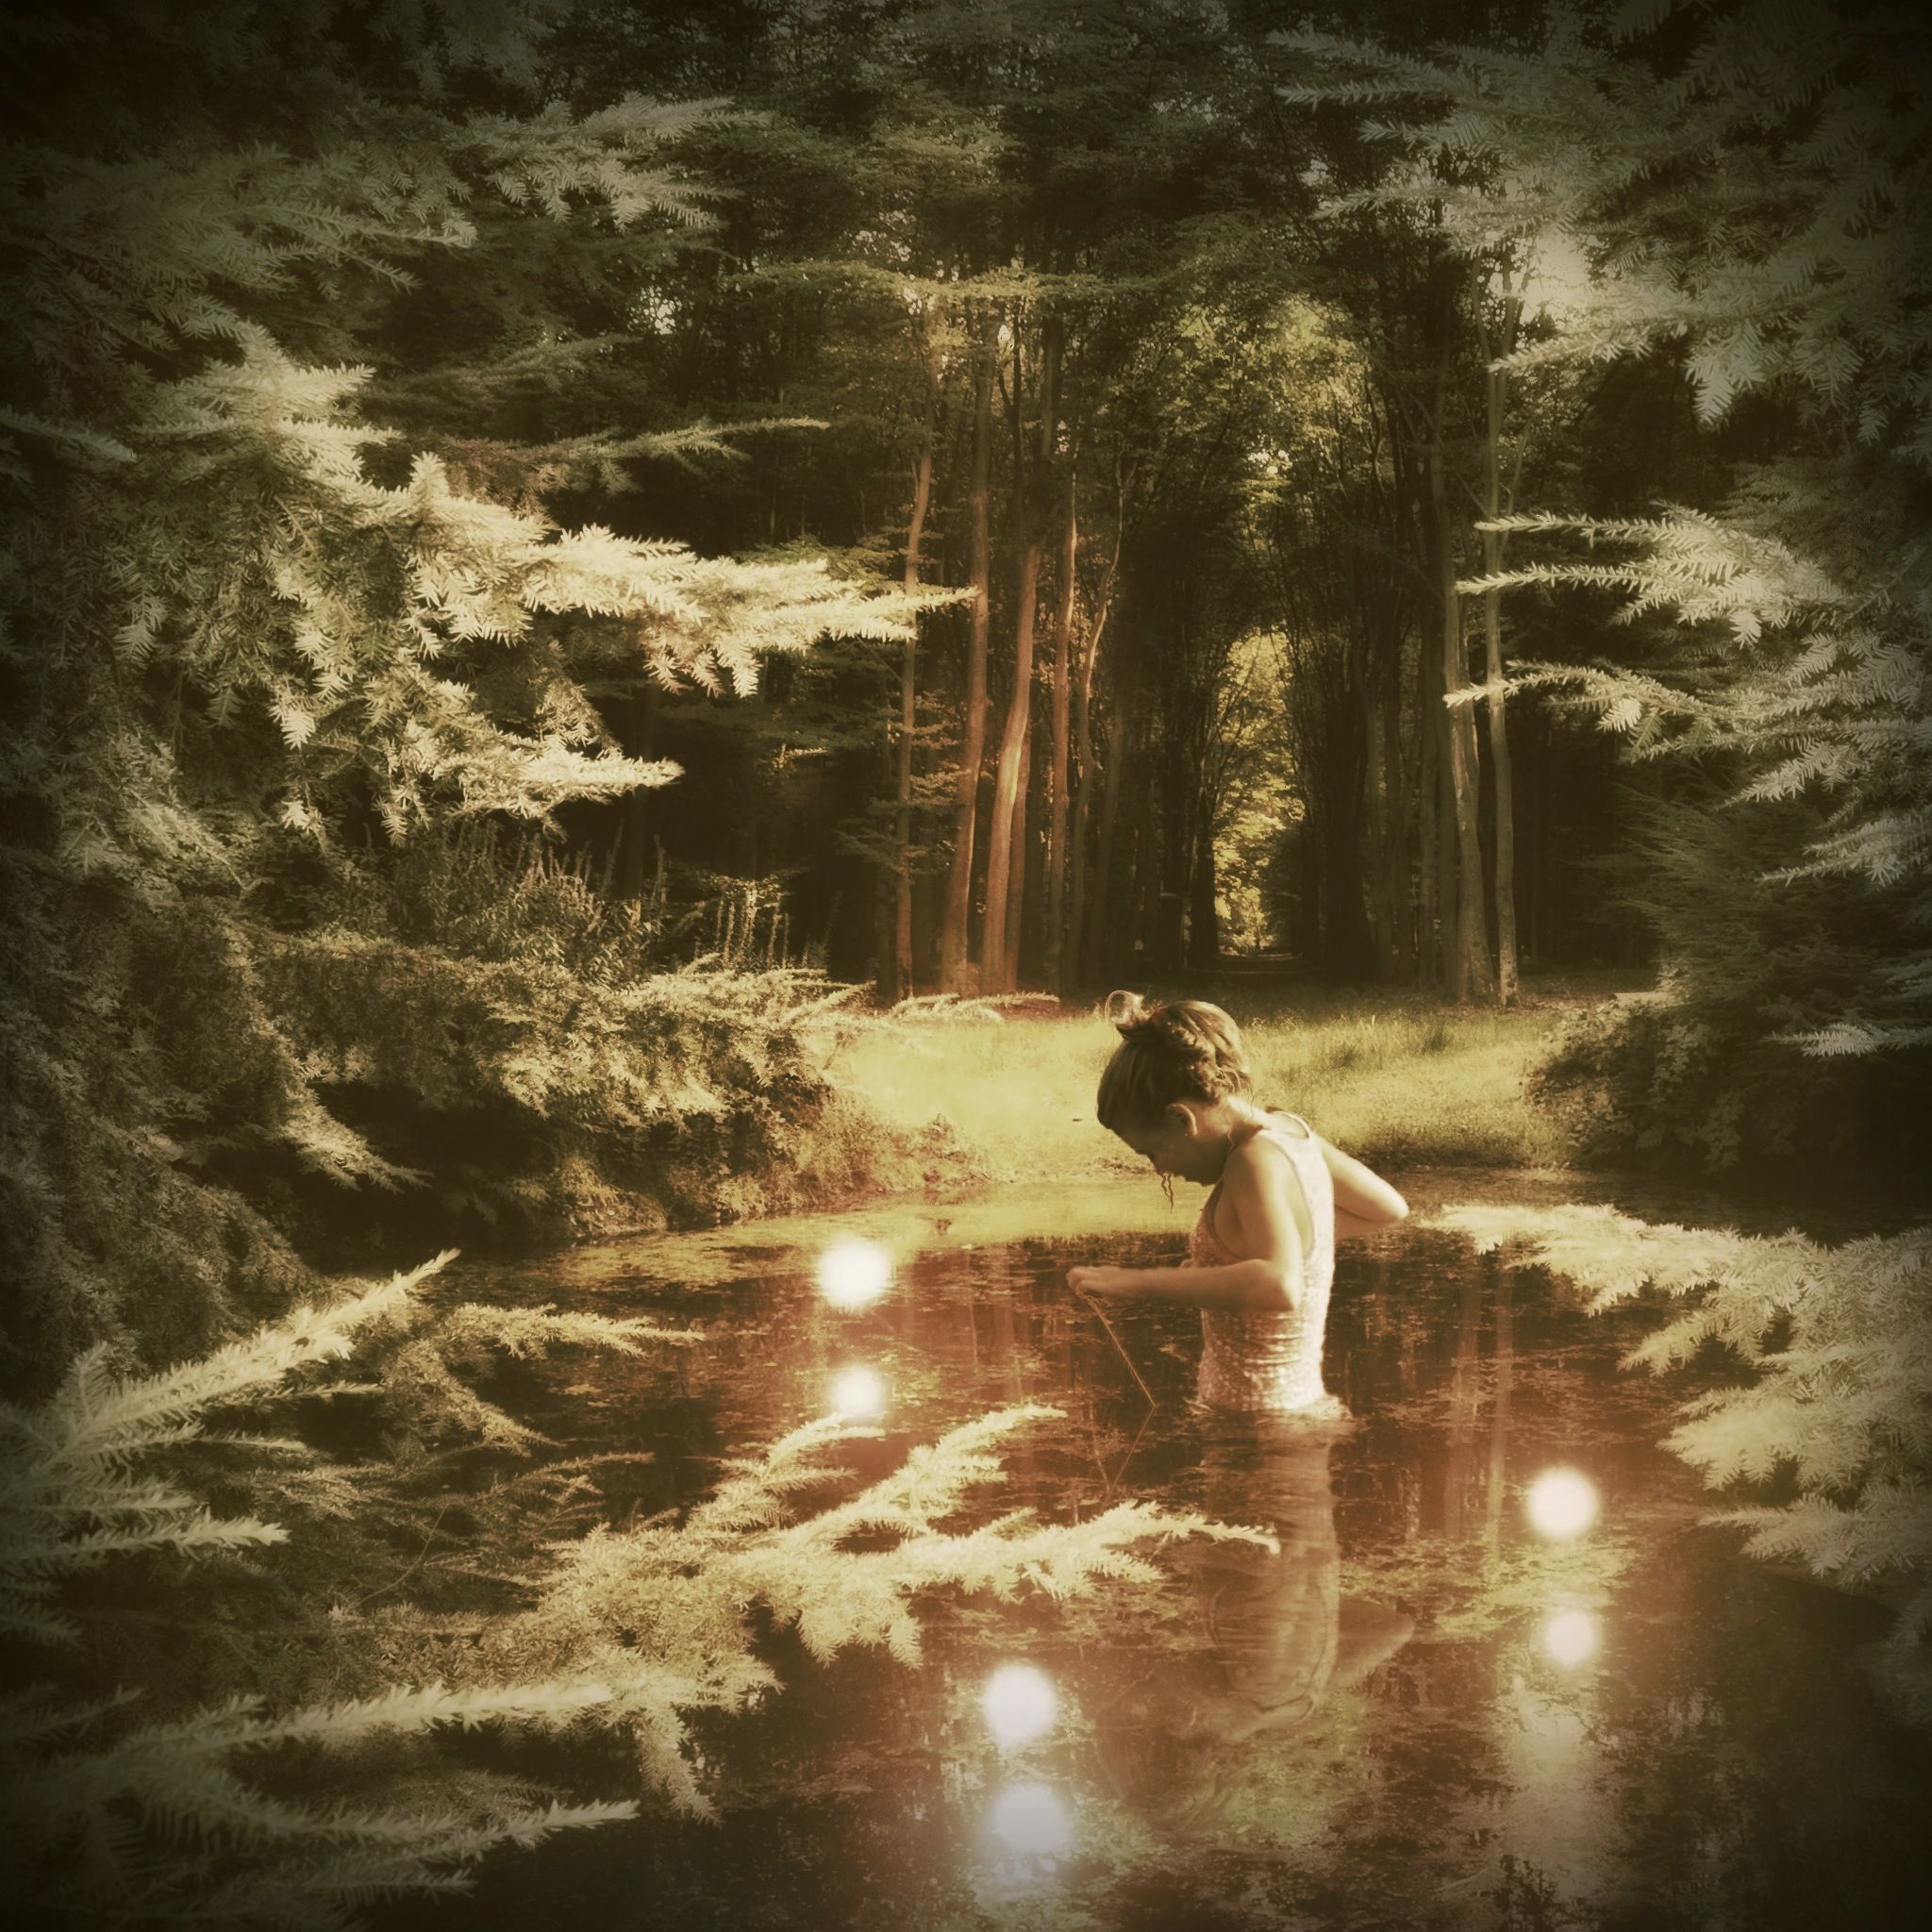 Dip in the pool of darkness. Don't be afraid, you may cleanse your soul in here..